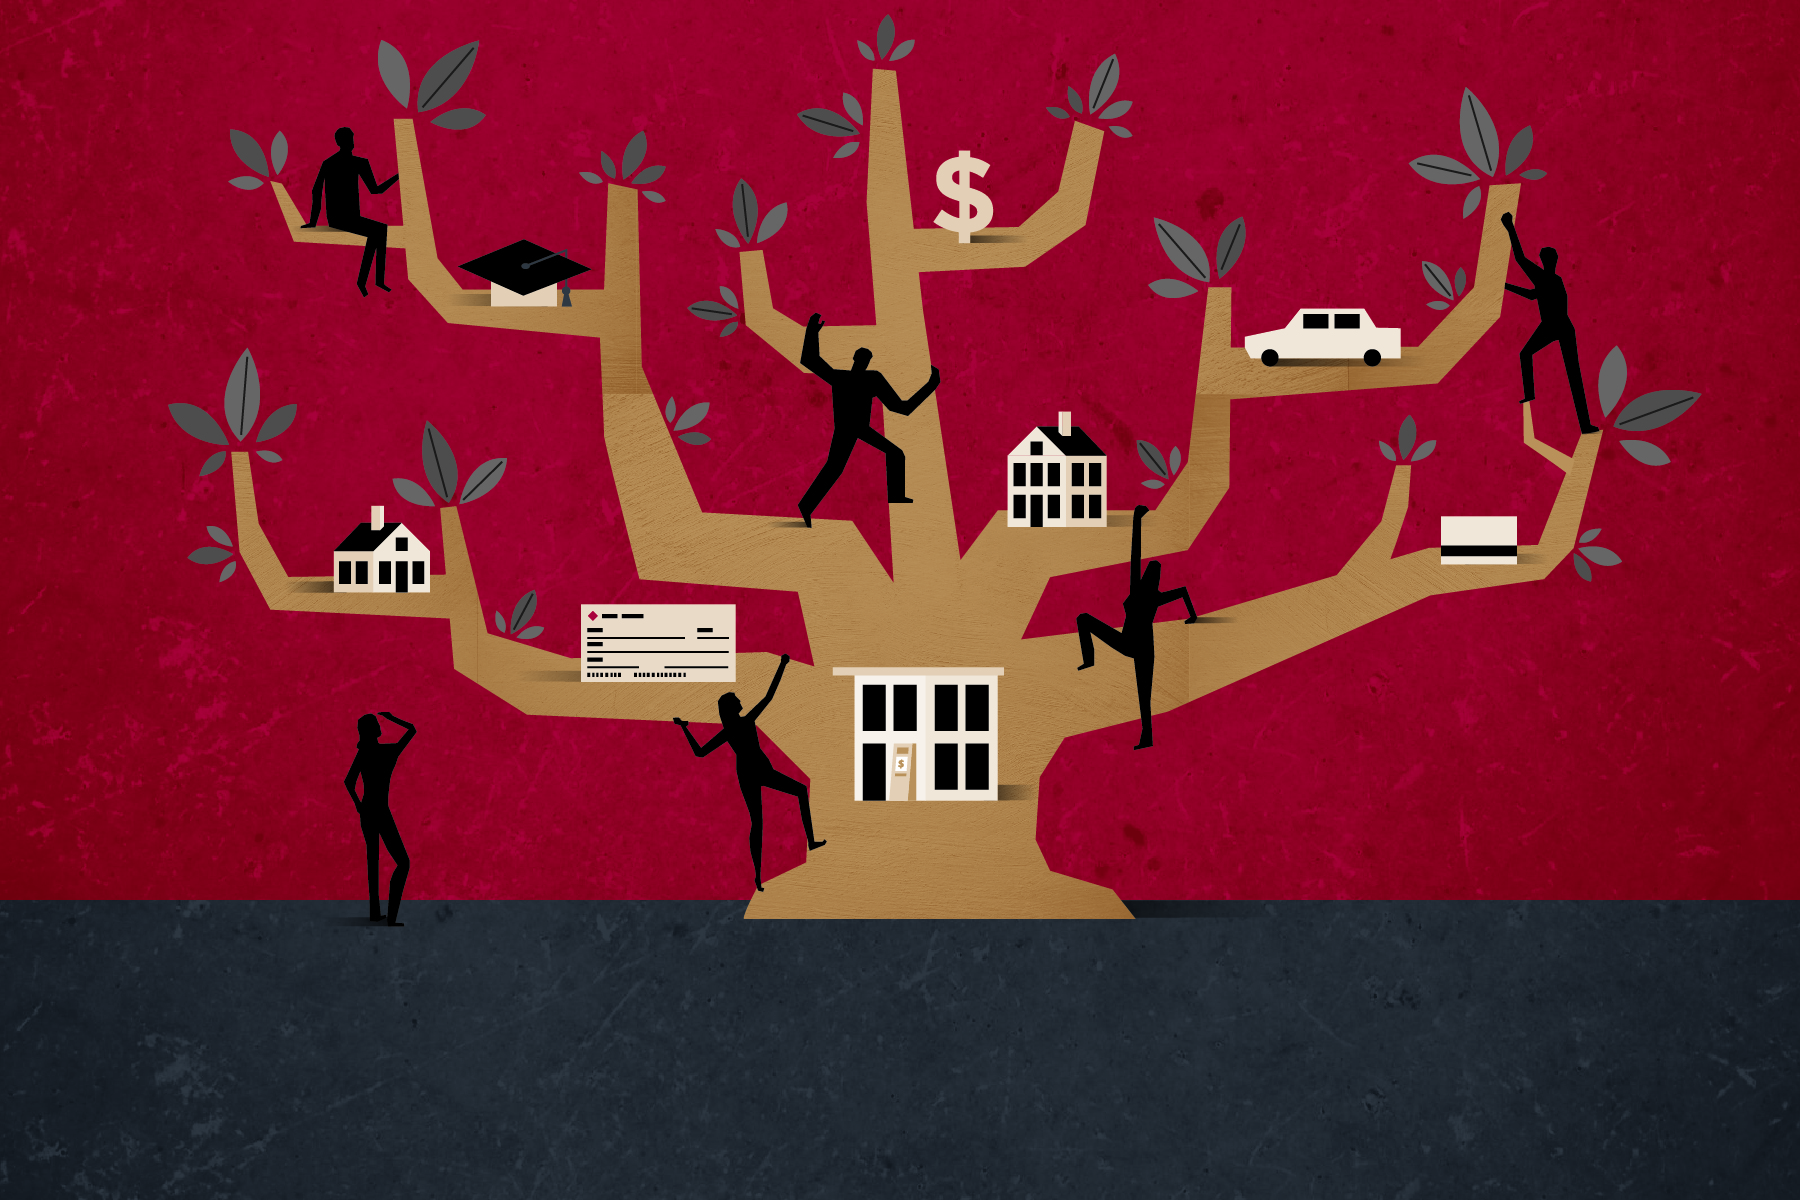 SFCU-Illustrations-tree-300-01.jpg